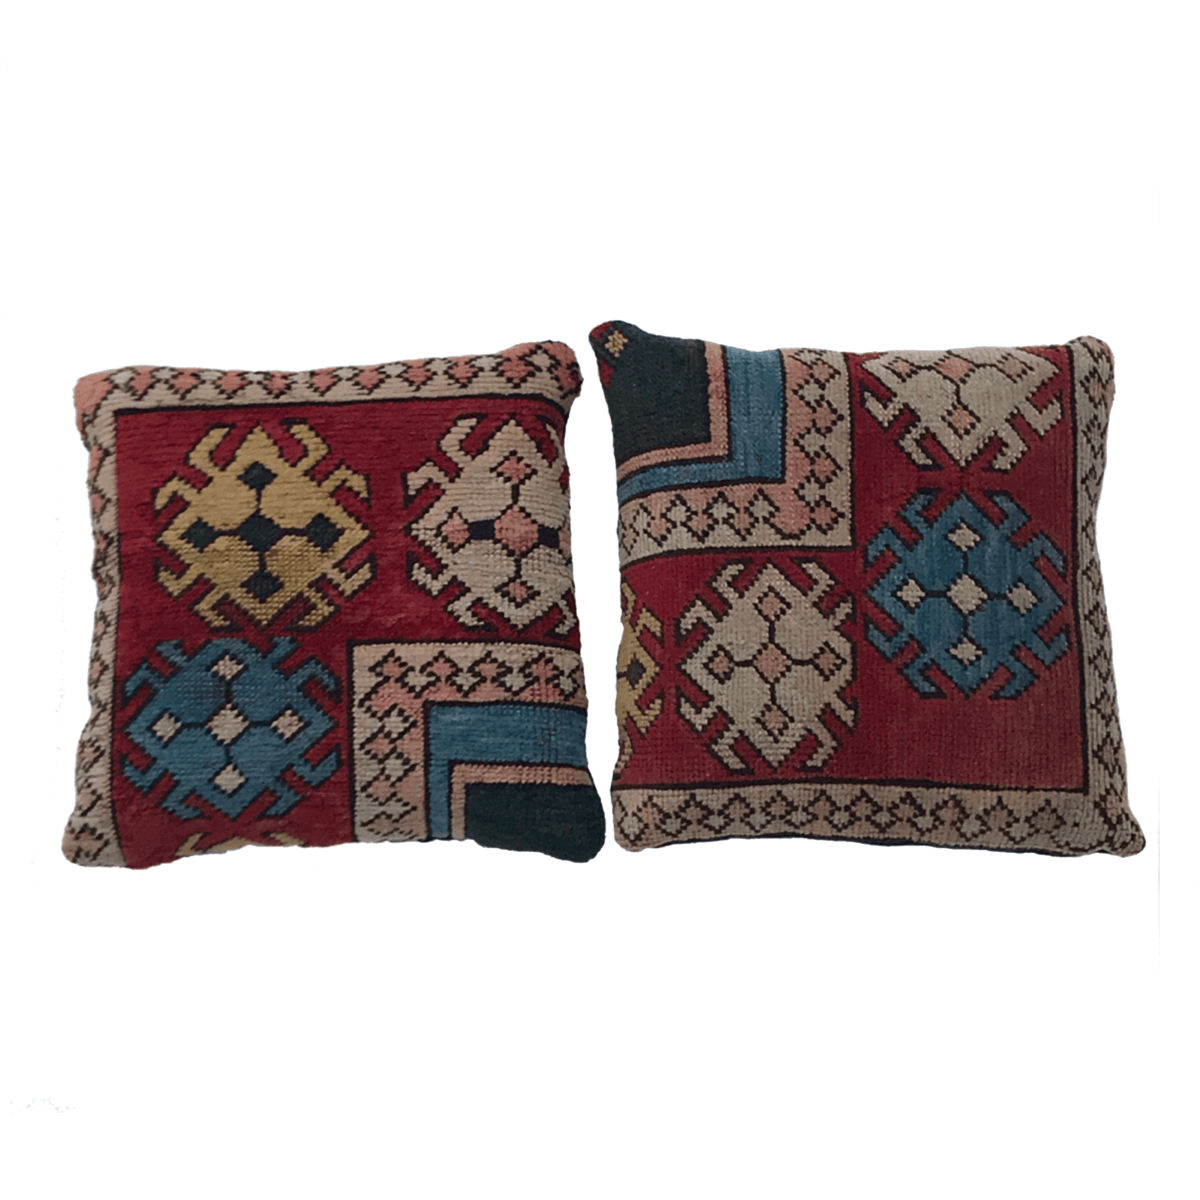 Domada_CW-8P_Turkish_Kazak_Rug_Pillows.png